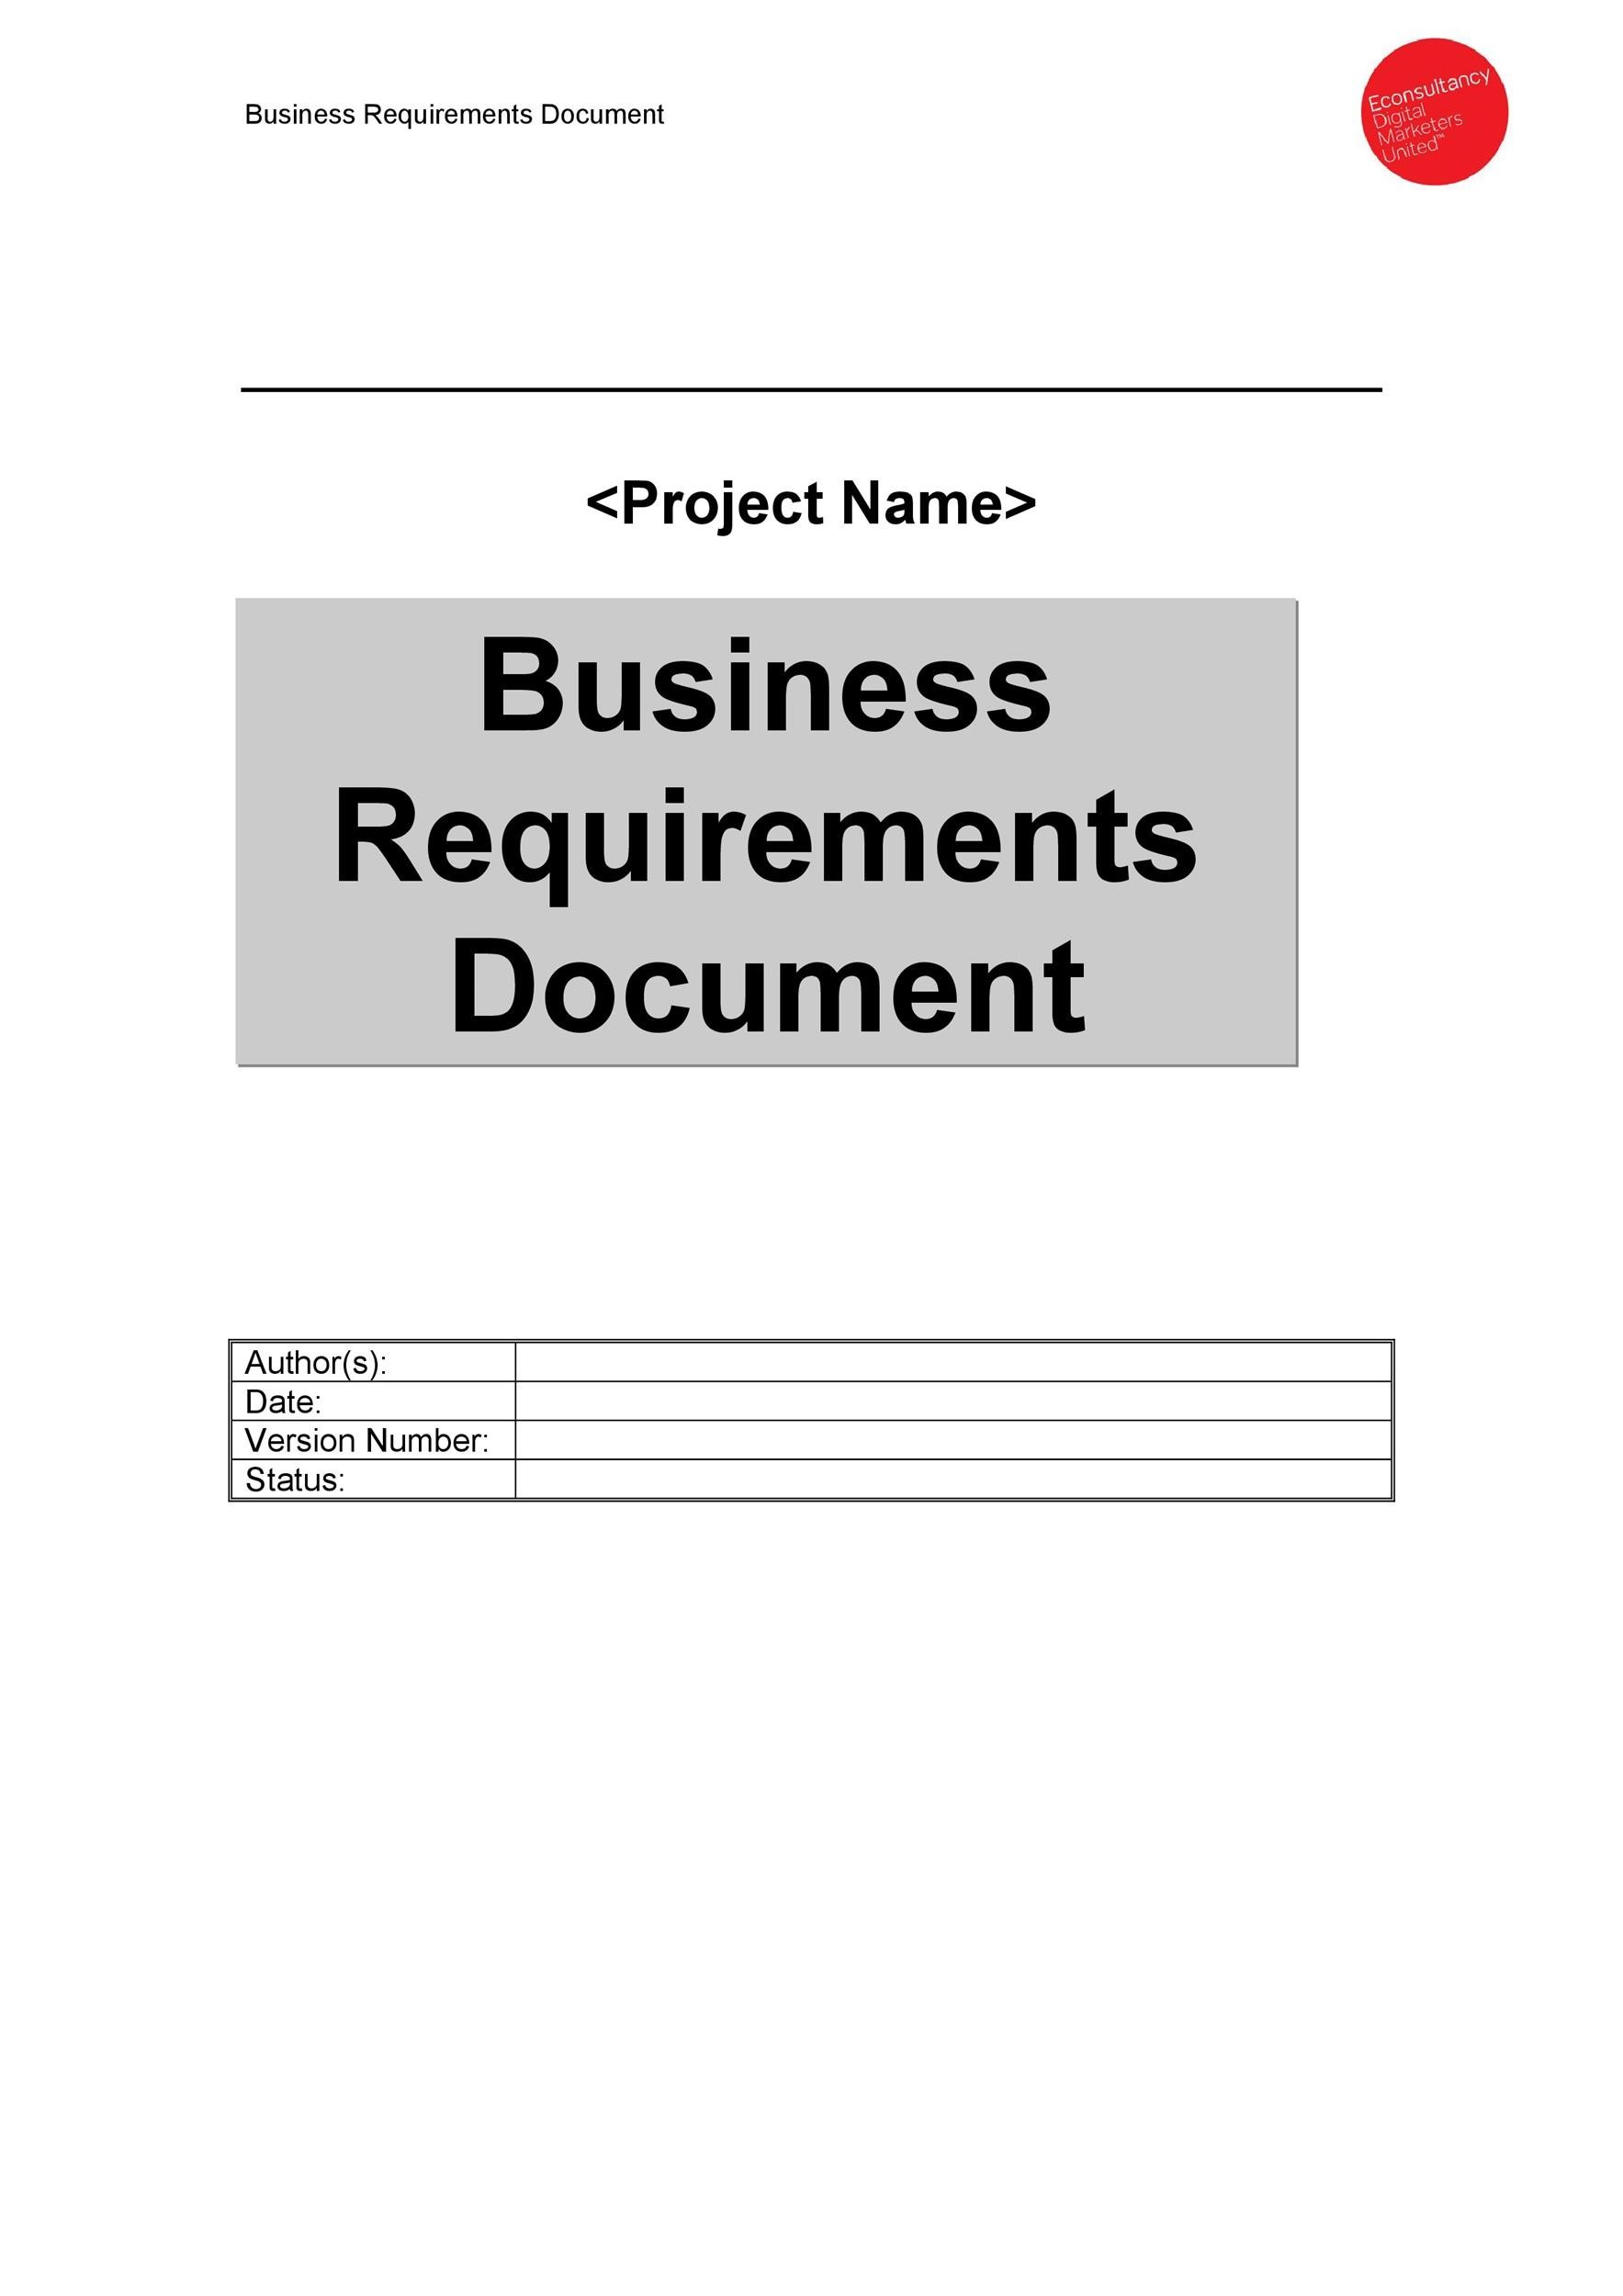 40 simple business requirements document templates template lab free business requirements document template 19 flashek